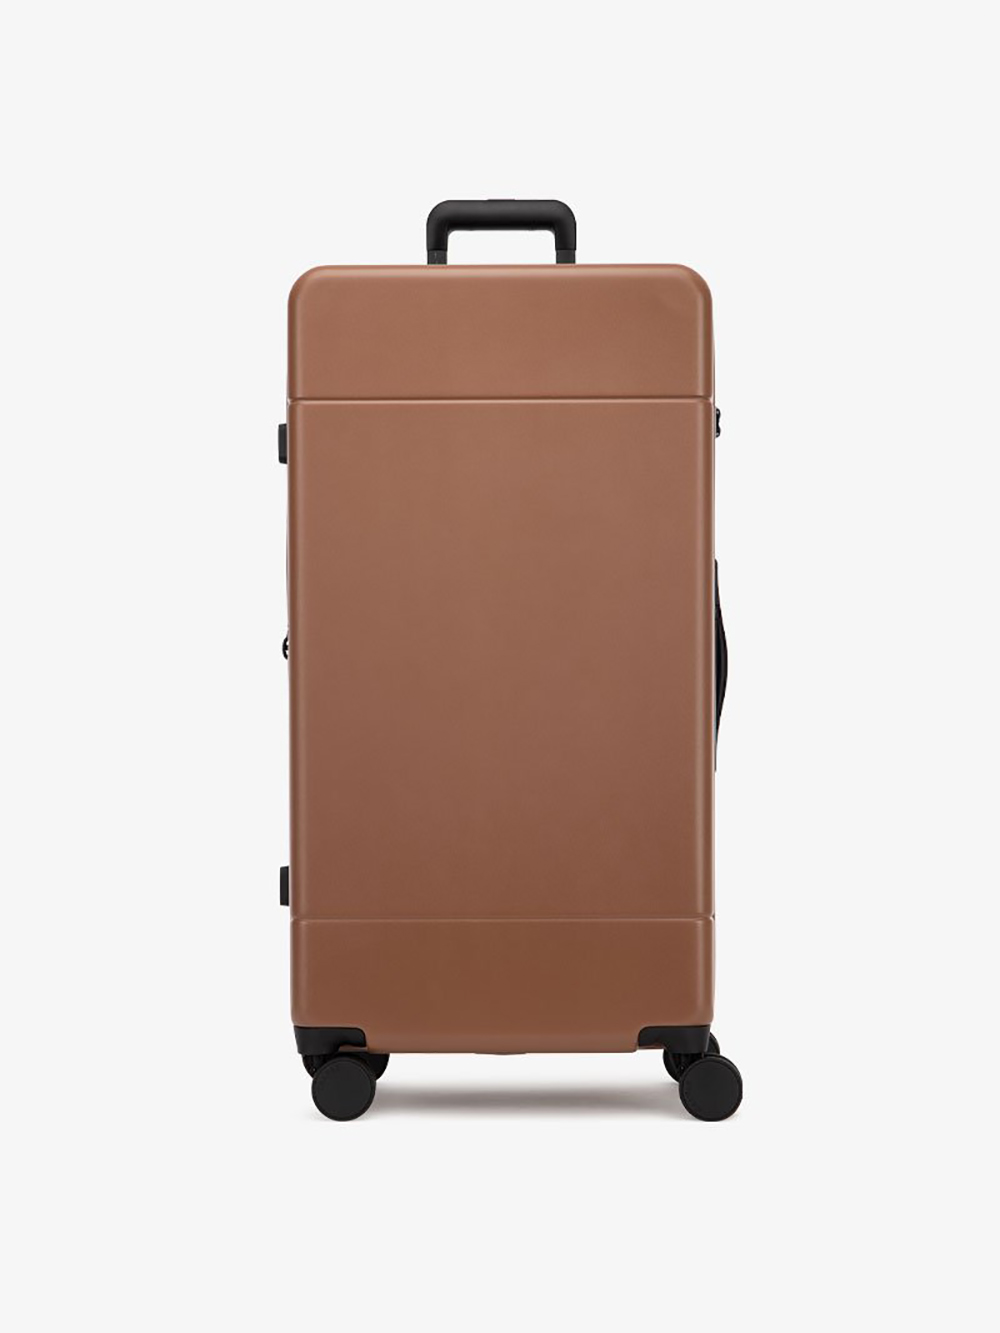 Hue Trunk Luggage